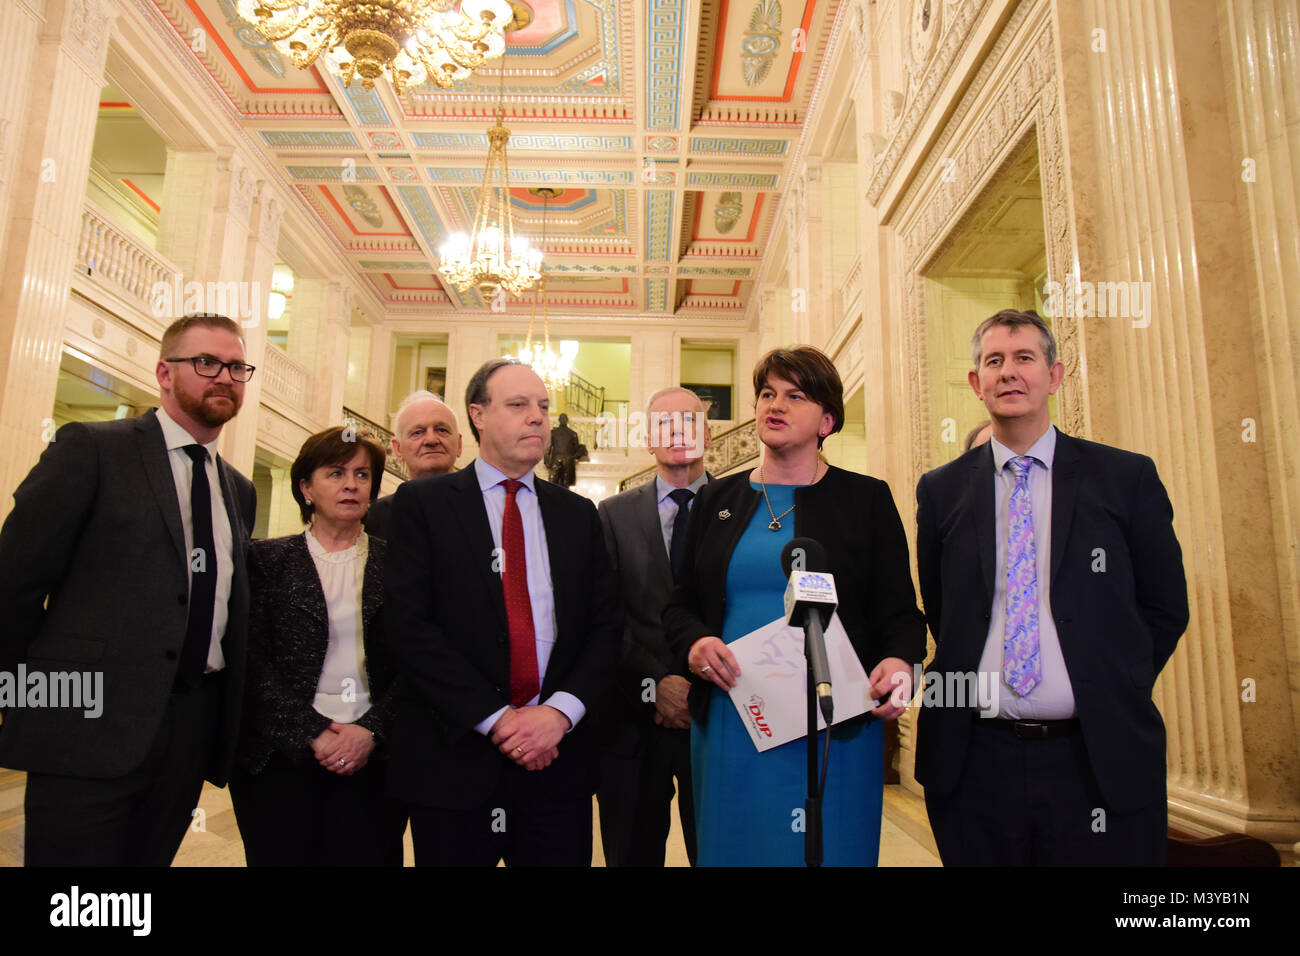 Belfast, UK. 12th Feb, 2018. DUP Party Leader Arlene Foster and members of her party address  media during assembly - Stock Image